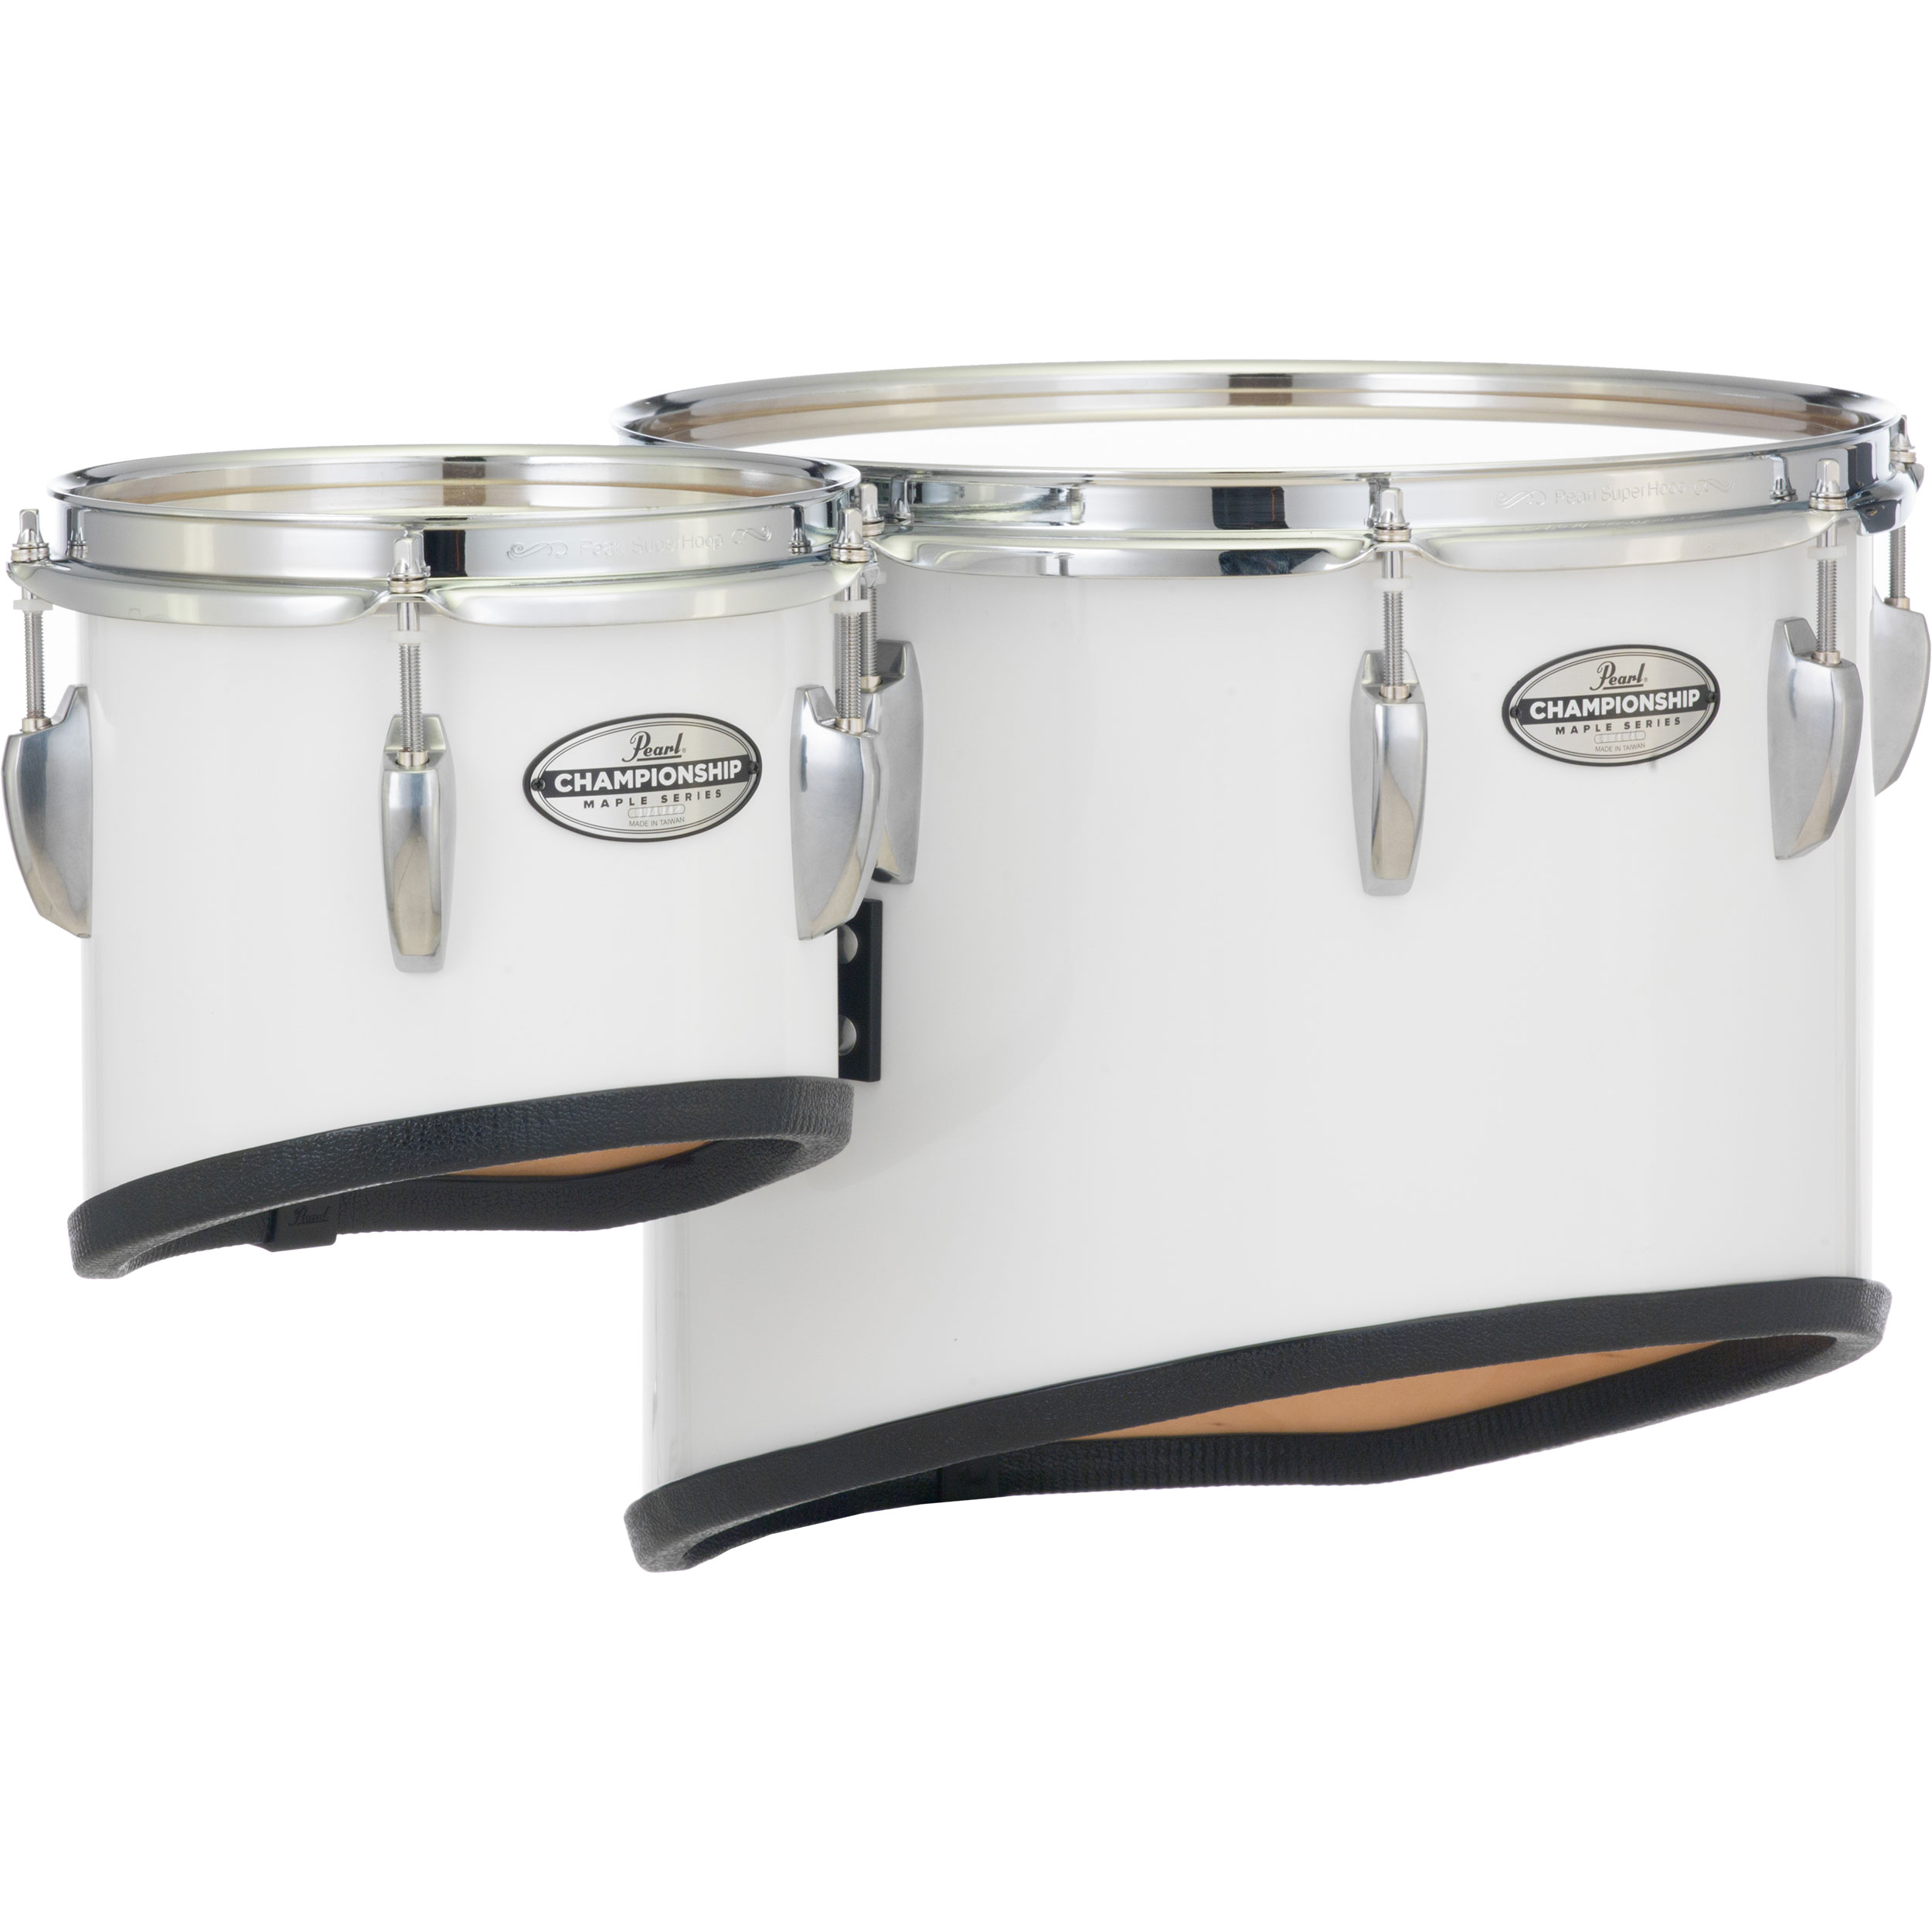 "Pearl 14""-8"" Championship Maple Sonic Cut Single Tenor Set with Mounts for CXS1 Carrier with Chrome Hardware (Specify Finish)"